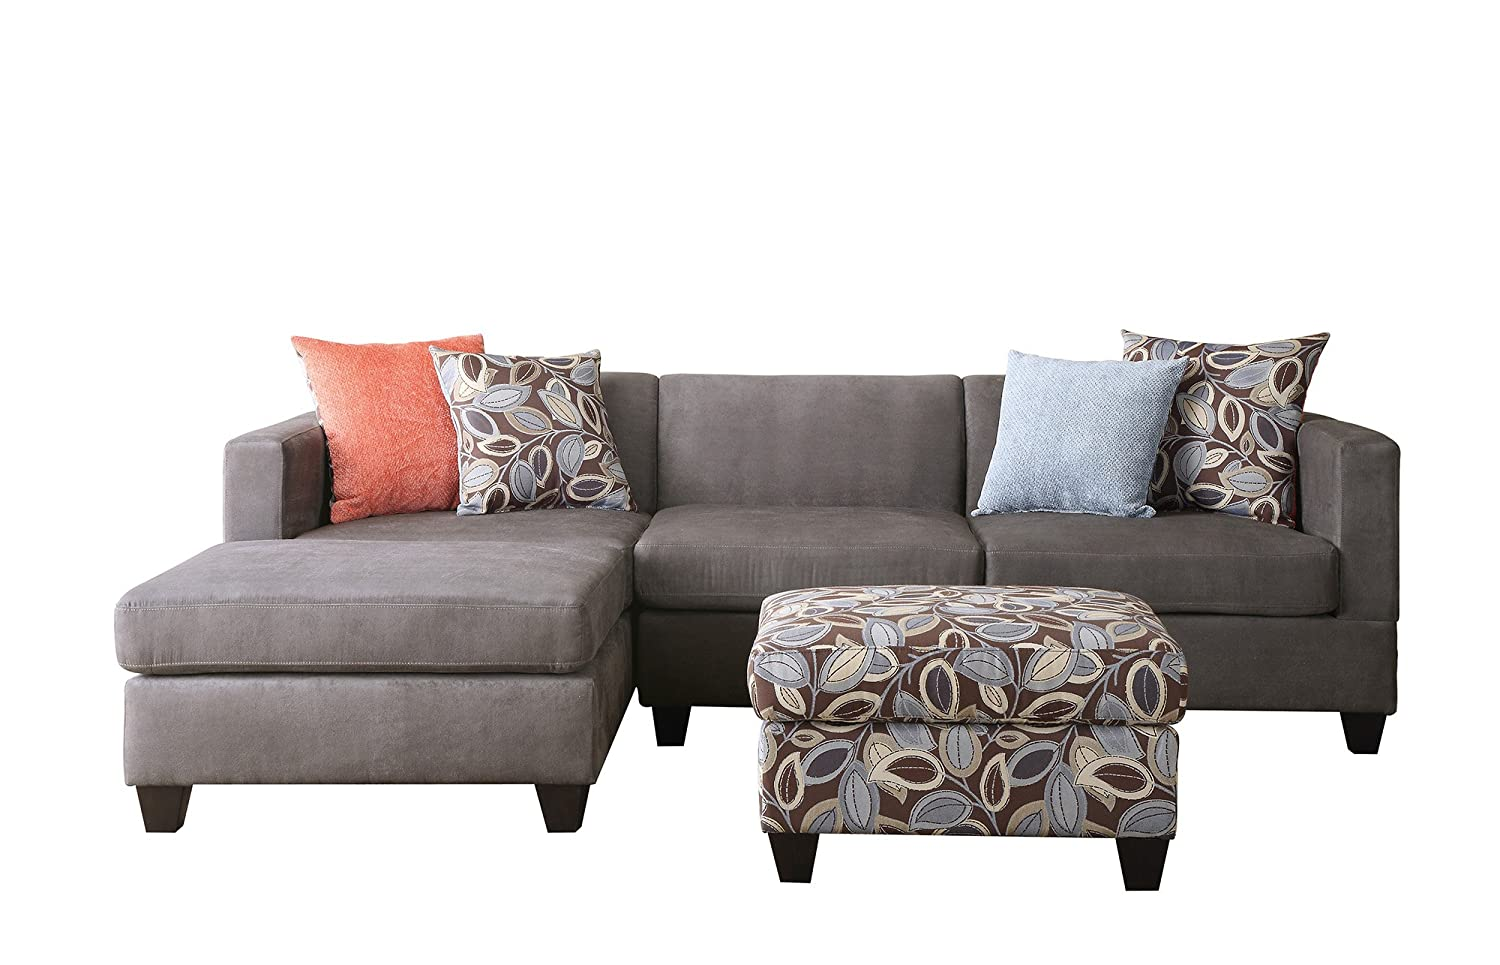 Amazon.com Bobkona Poundex Simplistic Collection 3-Piece Sectional Sofa with Ottoman Charcoal Kitchen u0026 Dining  sc 1 st  Amazon.com : three piece sectional couch - Sectionals, Sofas & Couches